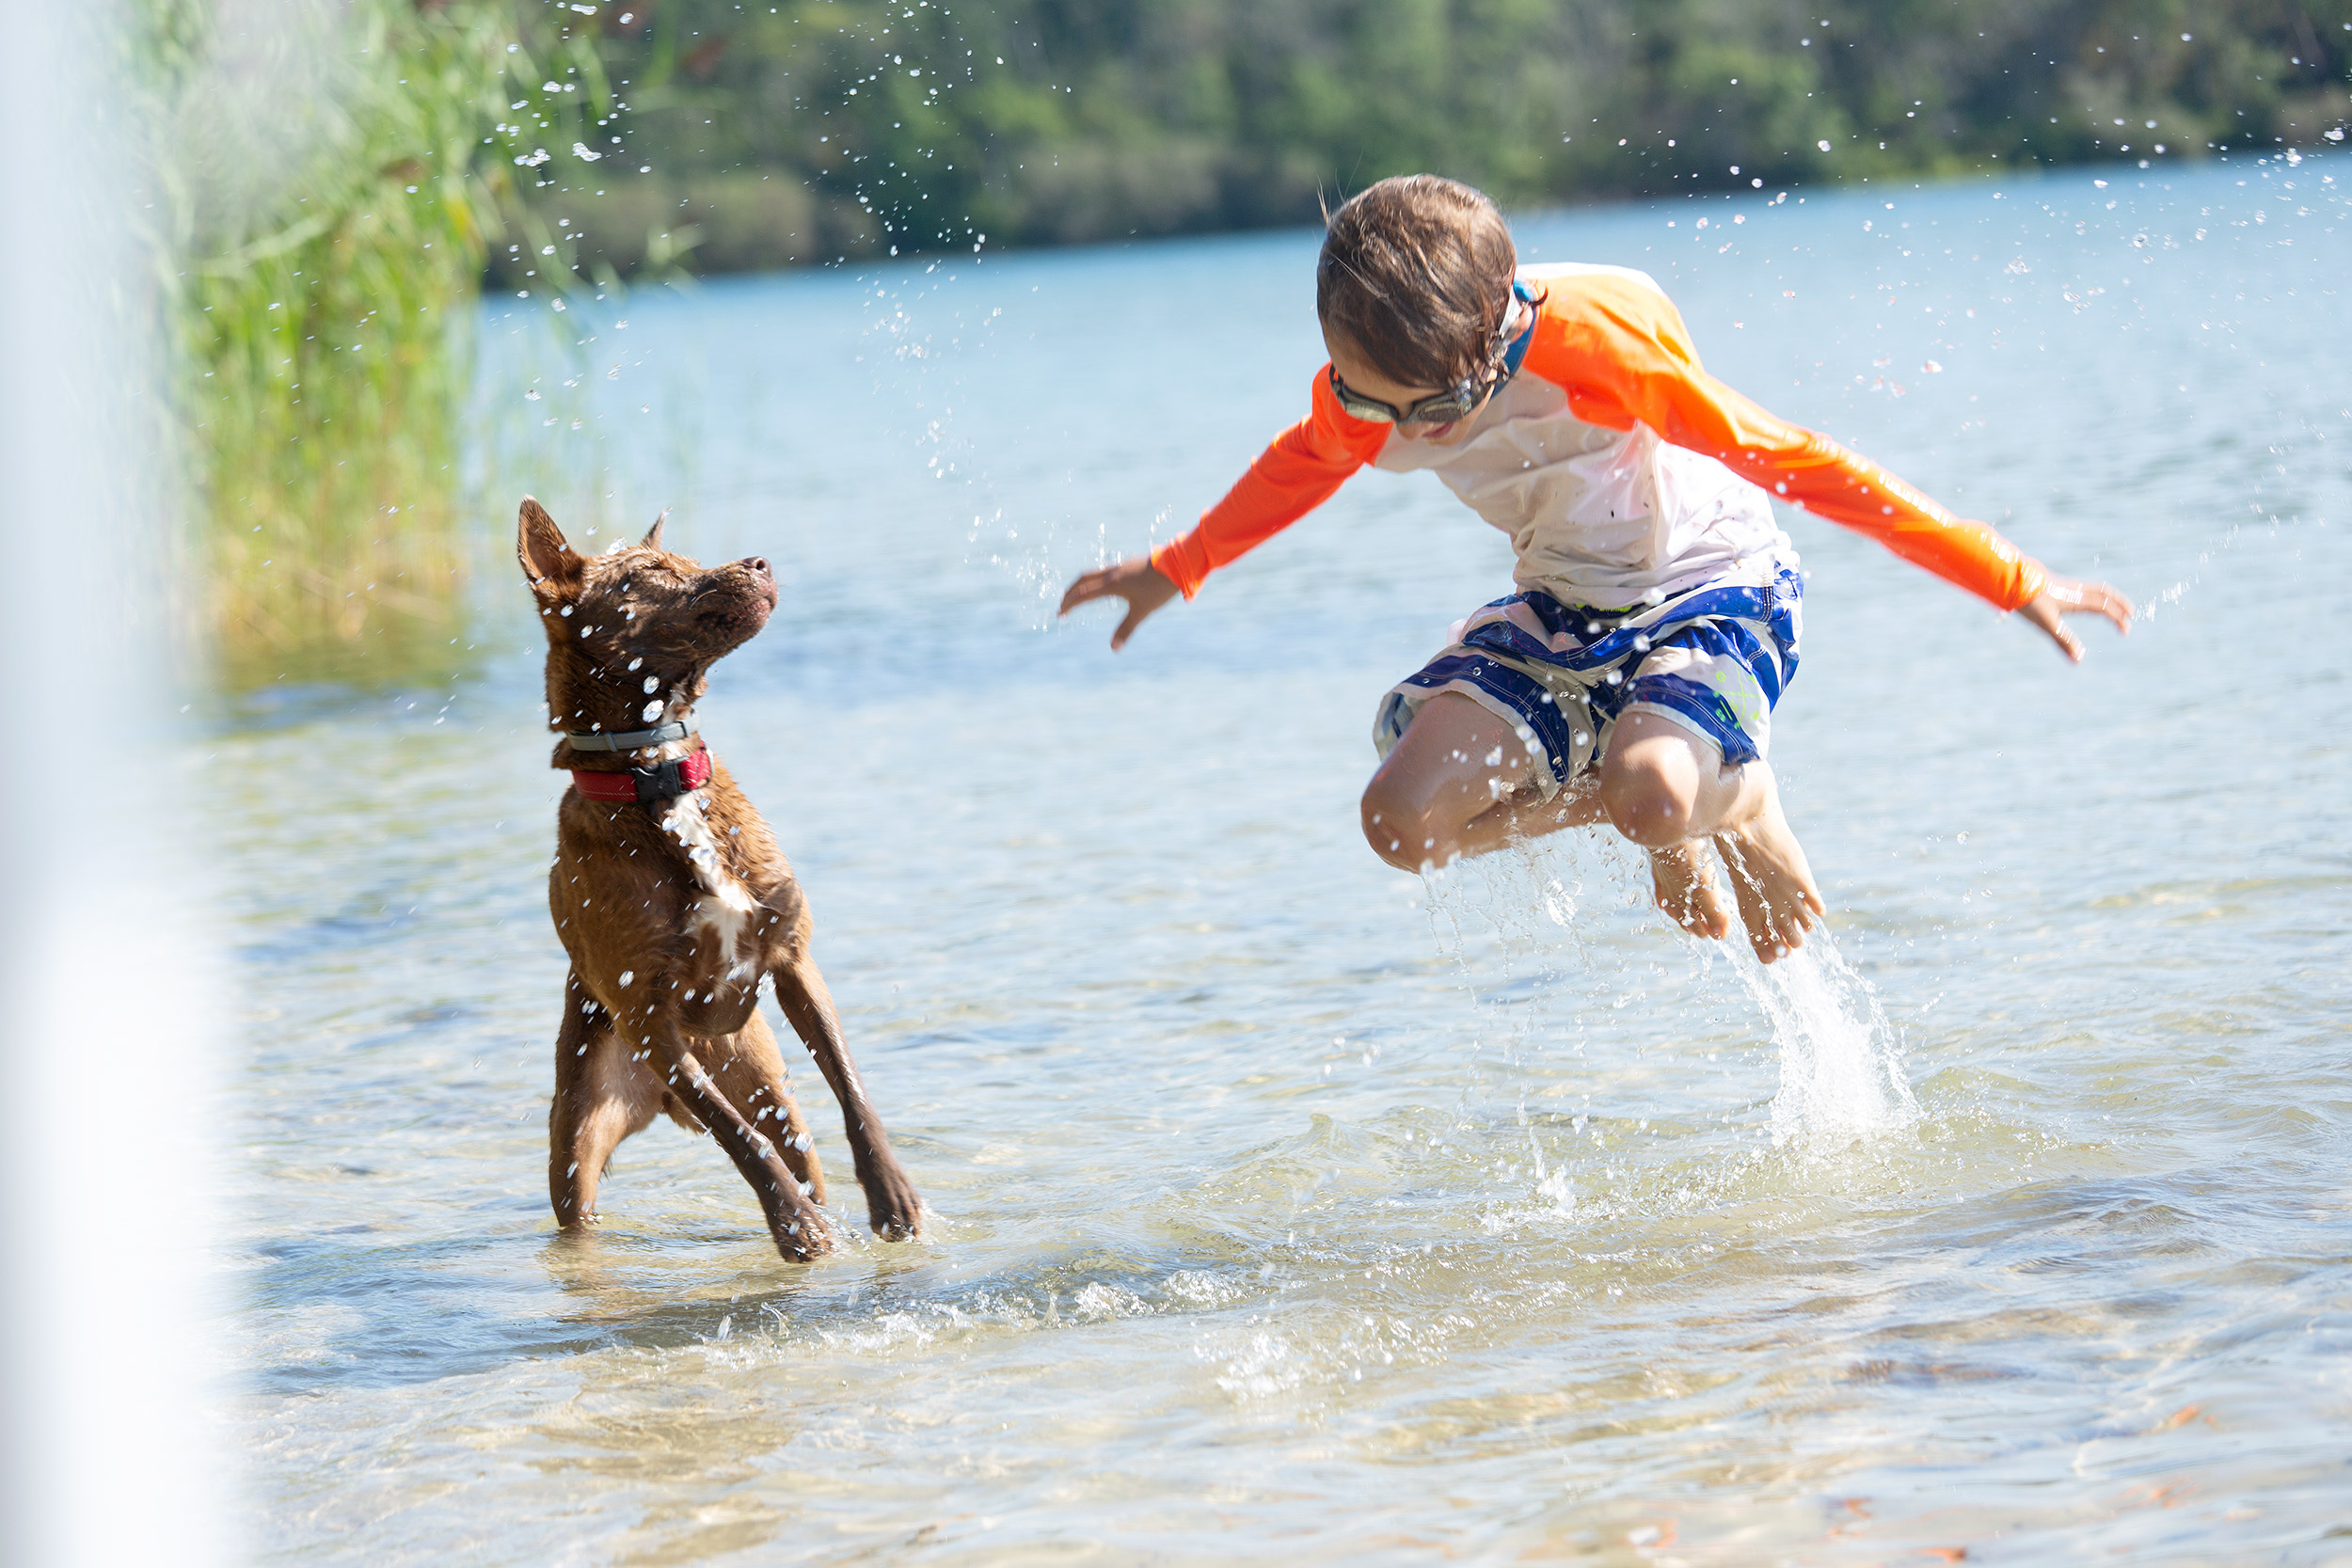 PHOTOGRAPHER | KIDS | CHILDHOOD | A BOY AND HIS DOG | REAL PLAY | JUMP | PLAY | Fun | 60